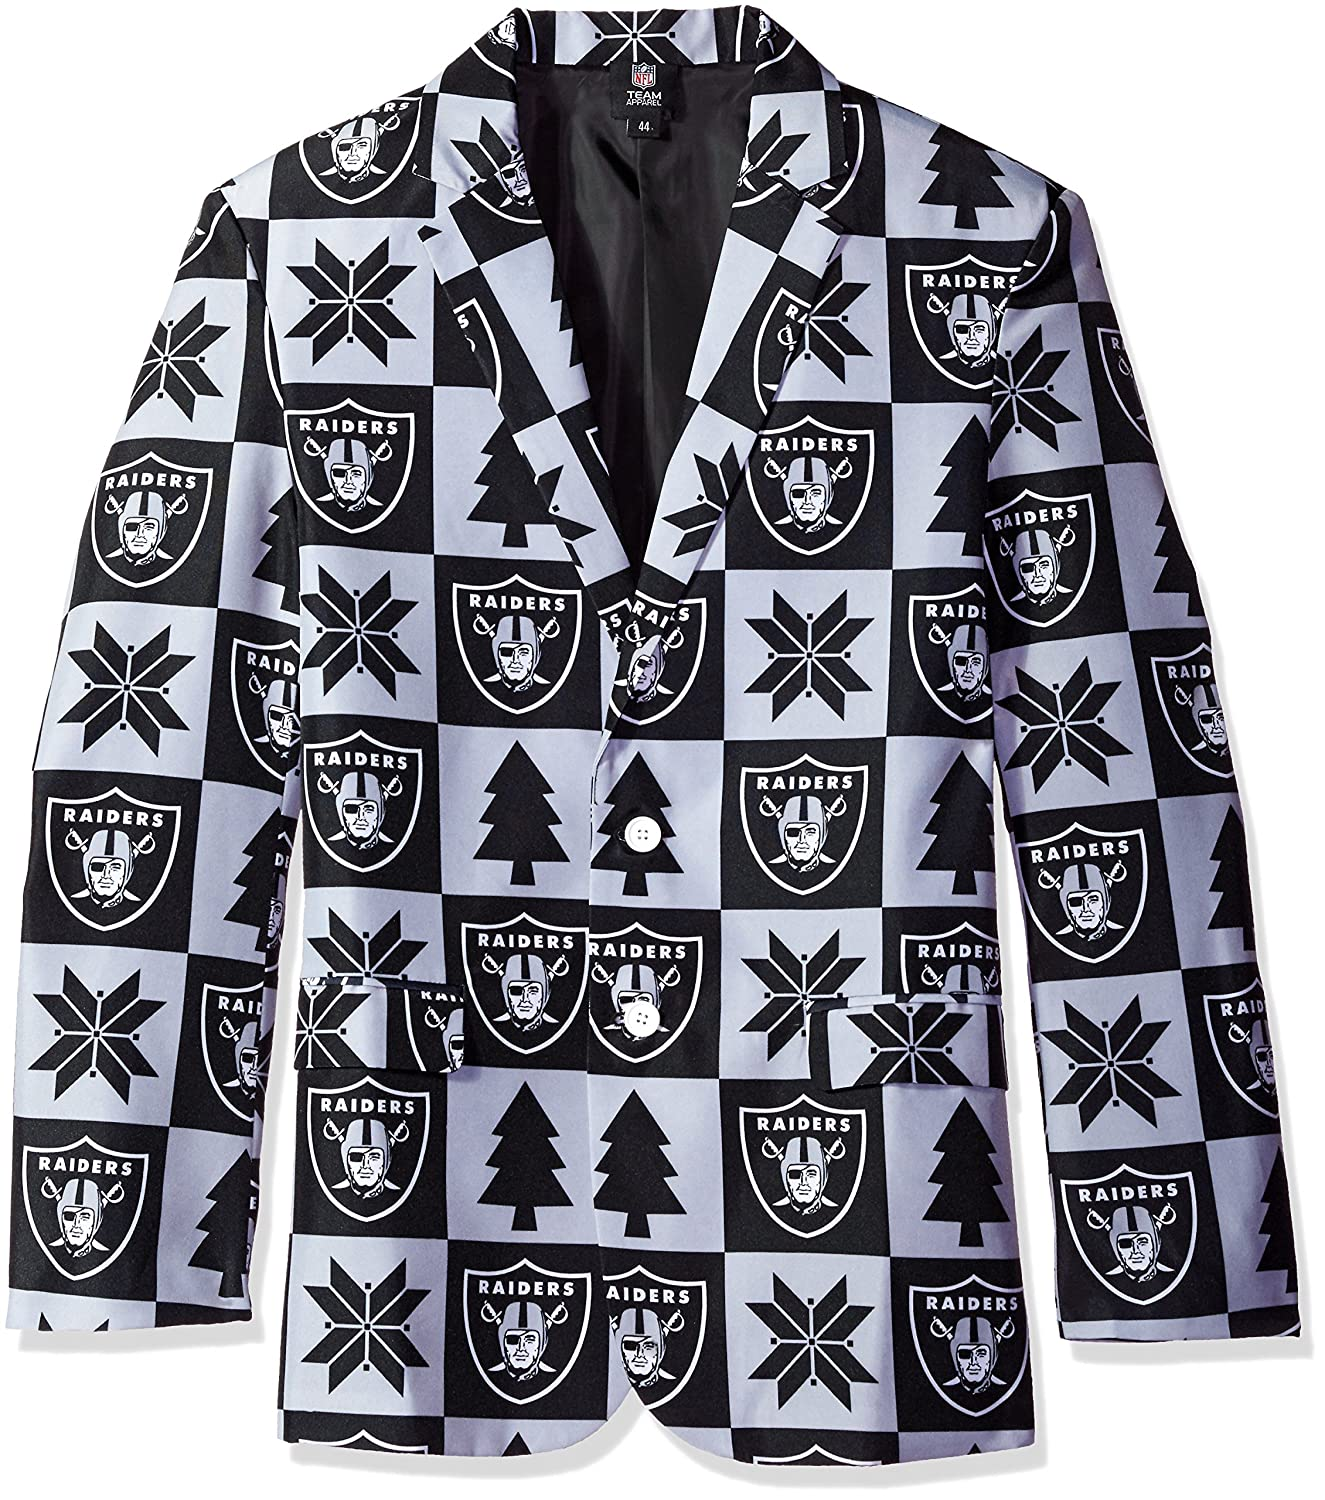 Amazon.com : NFL Patches Business Jacket : Sports & Outdoors